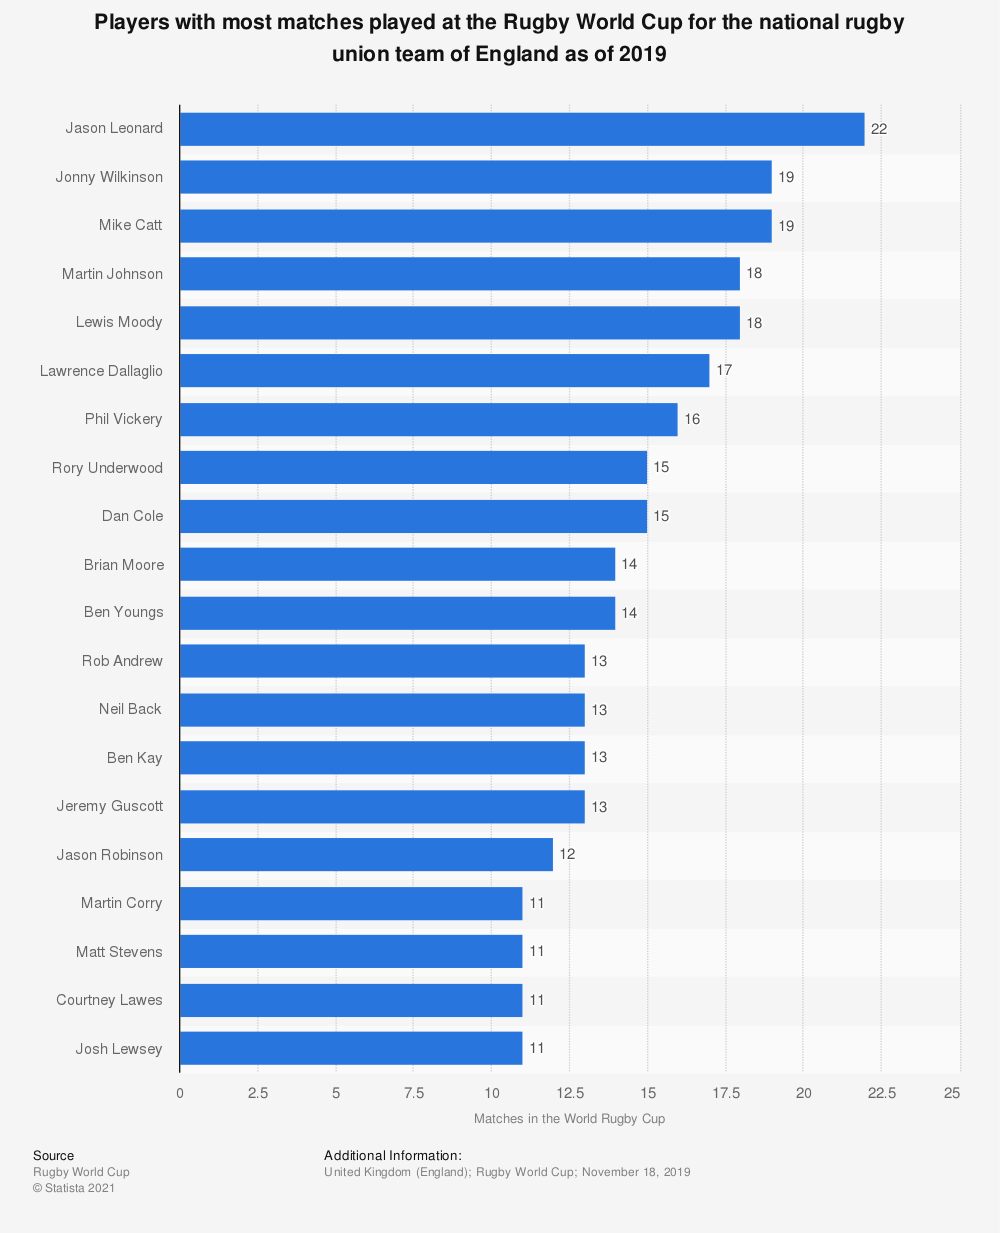 Statistic: Players with most matches played at the Rugby World Cup for the national rugby union team of England as of 2019 | Statista